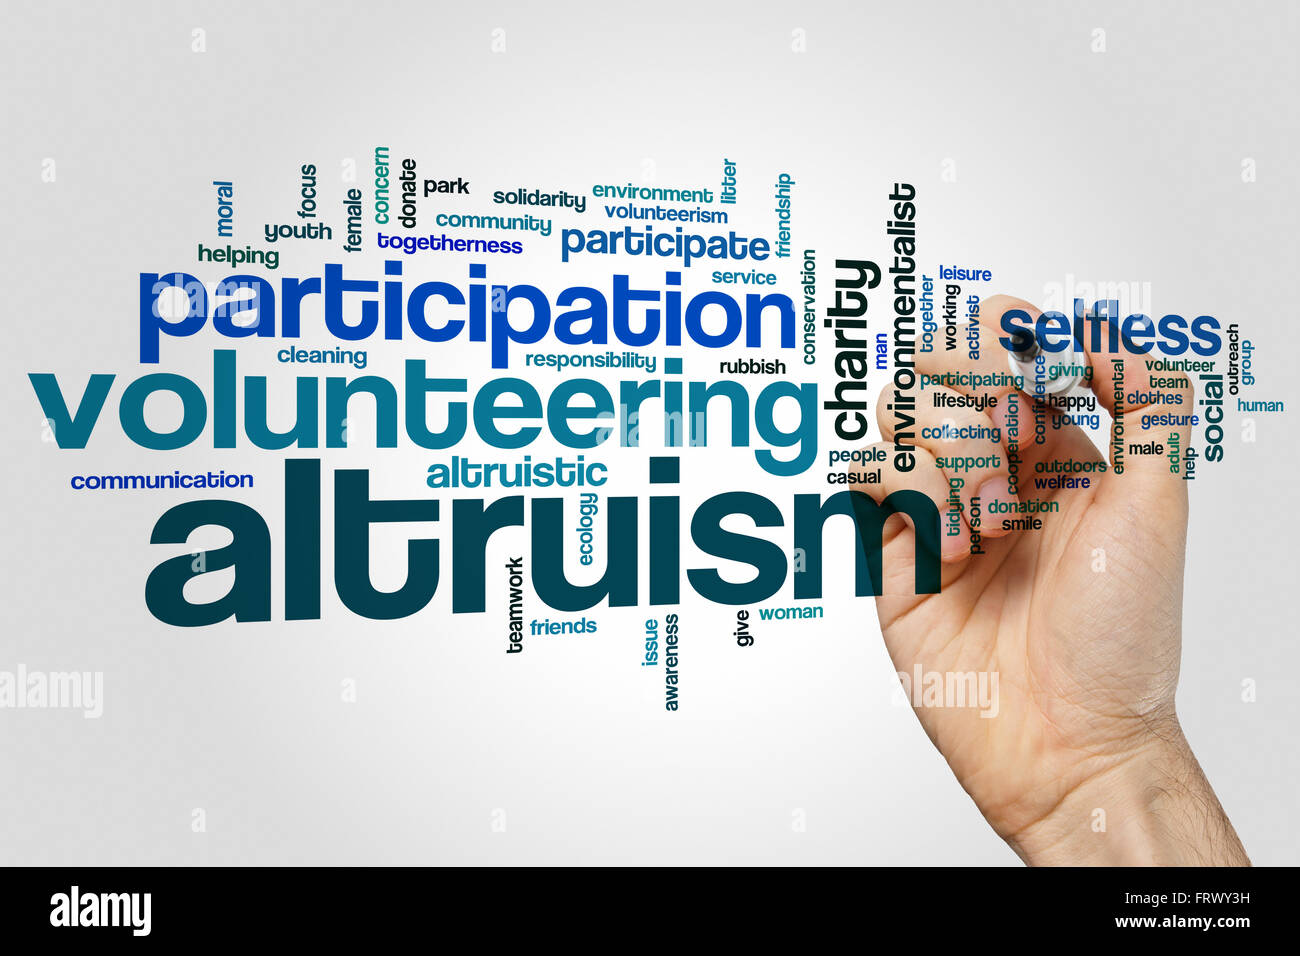 Altruism concept word cloud background - Stock Image